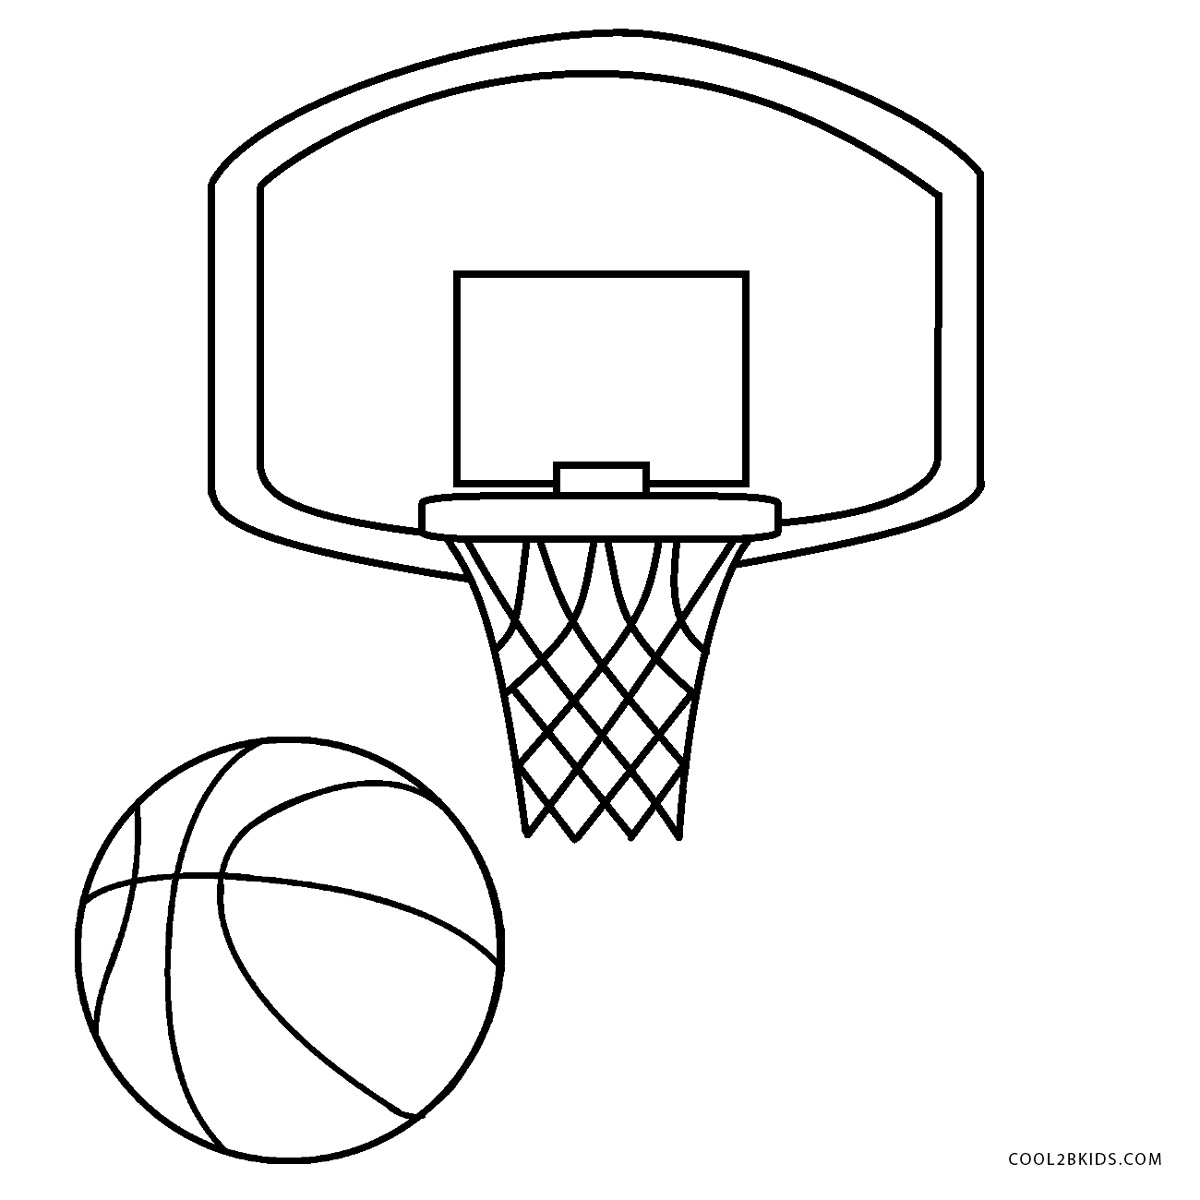 Free Printable Basketball Coloring Pages For Kids